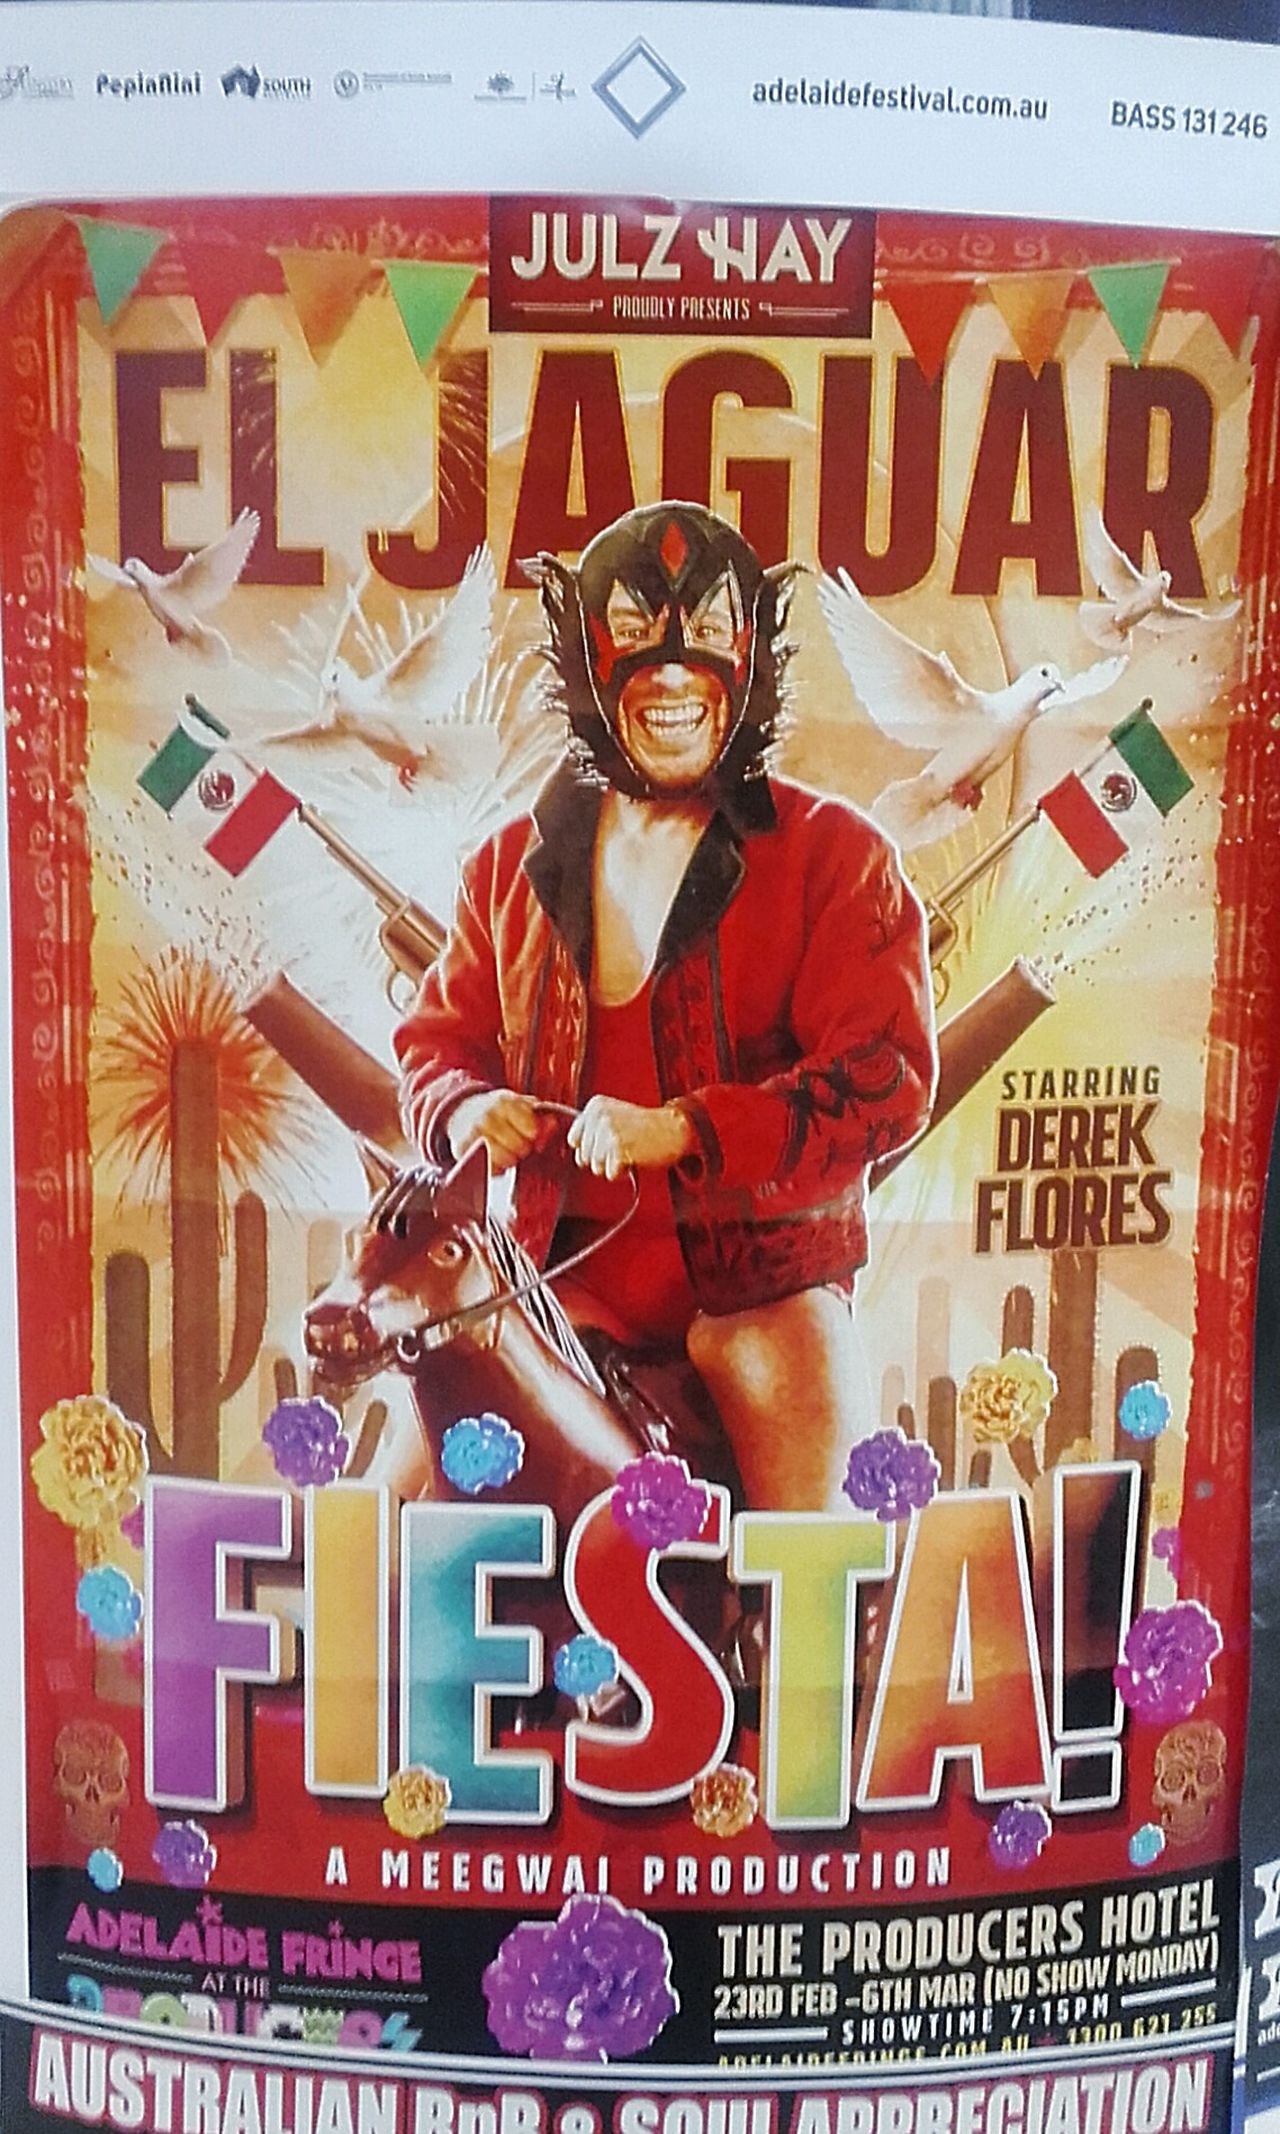 El Jaguar Fiesta FIESTA! Derek Flores Posterart Poster Posters Poster Art Poster Color Poster! Poster Wall Meegwai Poster Collection Posterporn Posterwall Adelaide Fringe Postercollection Meegwai Production Julz Hay Wall Poster Color Posters Posterdesign Advertisingposters Advertisement Posters Colour Posters